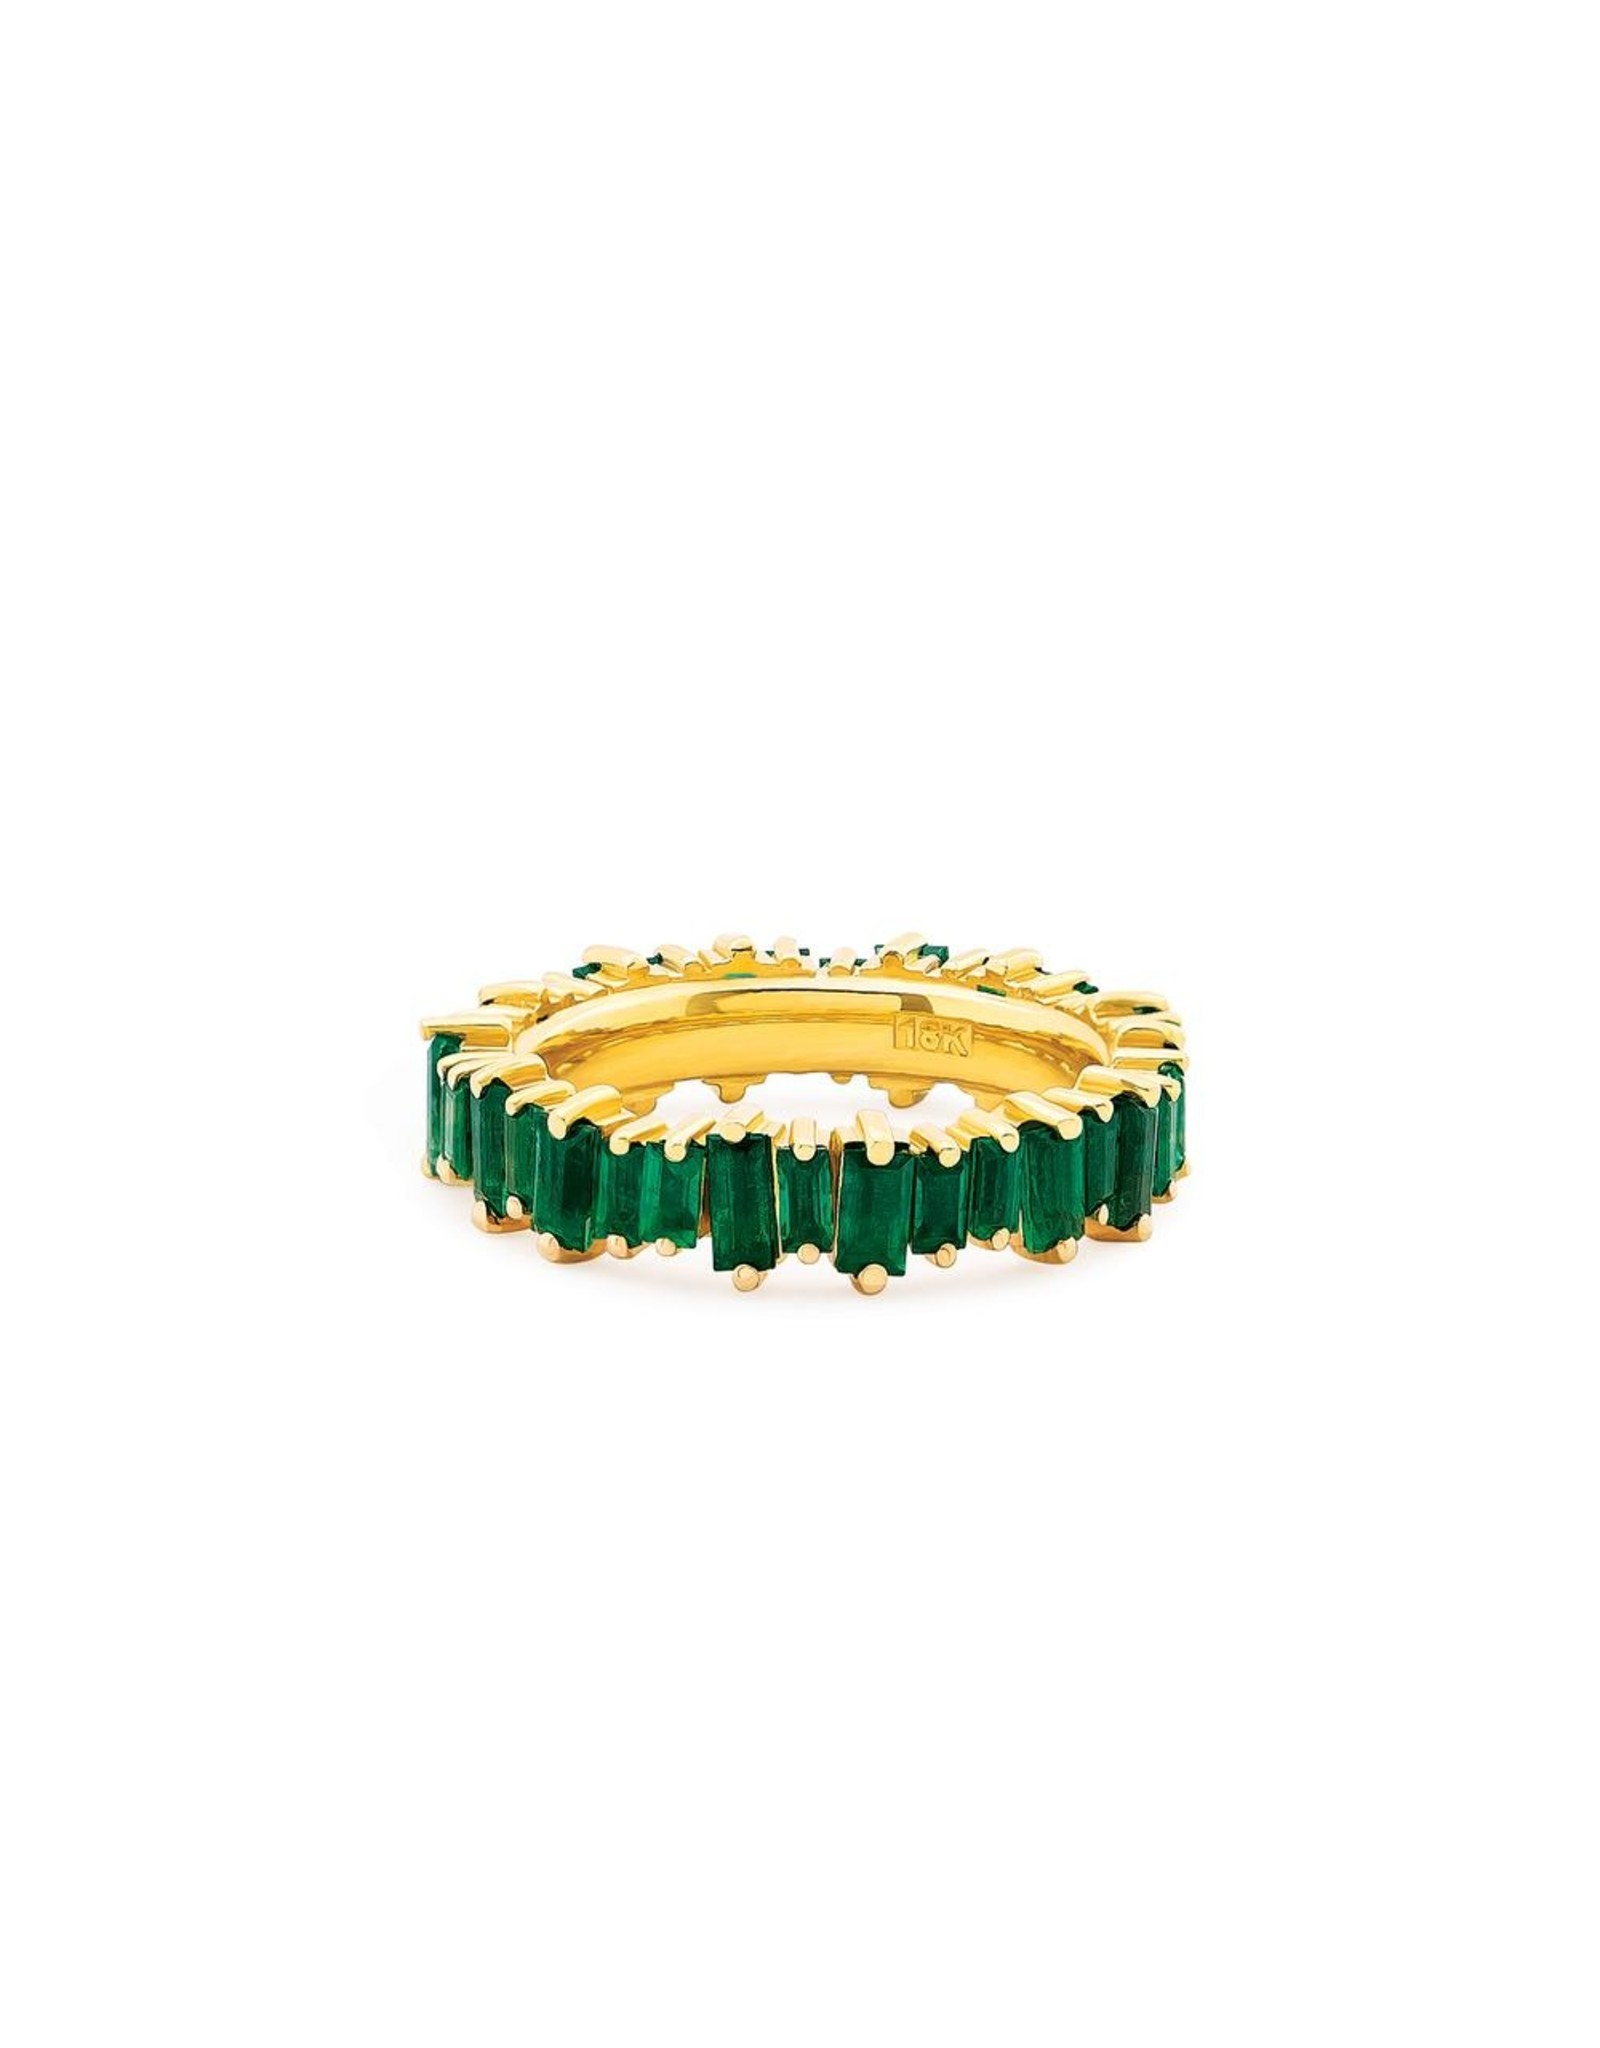 Suzanne Kalan Suzanne Kalan Emerald Baguette Band (Size: 6.5, Color: Yellow Gold / Emerald)